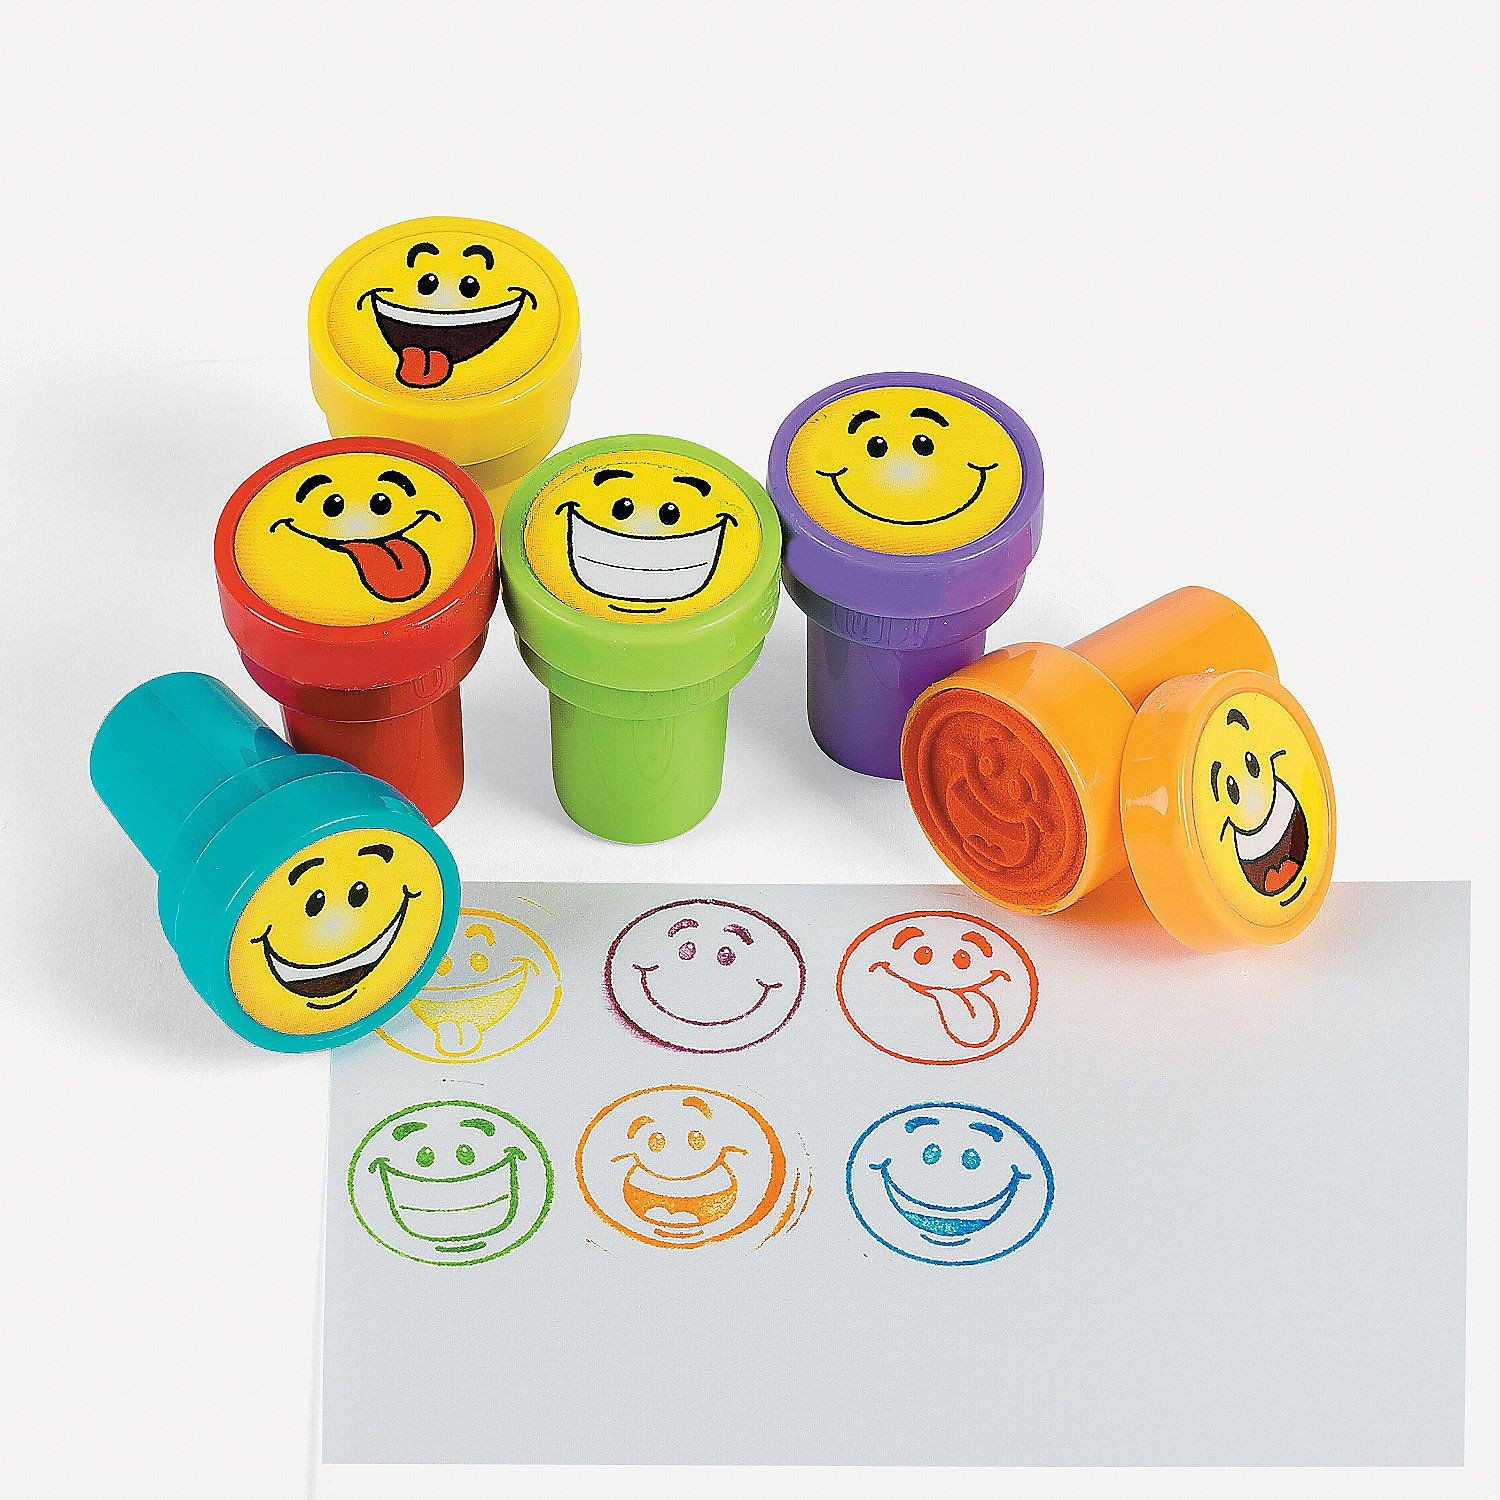 Goofy Smile Face Stampers 24ea for